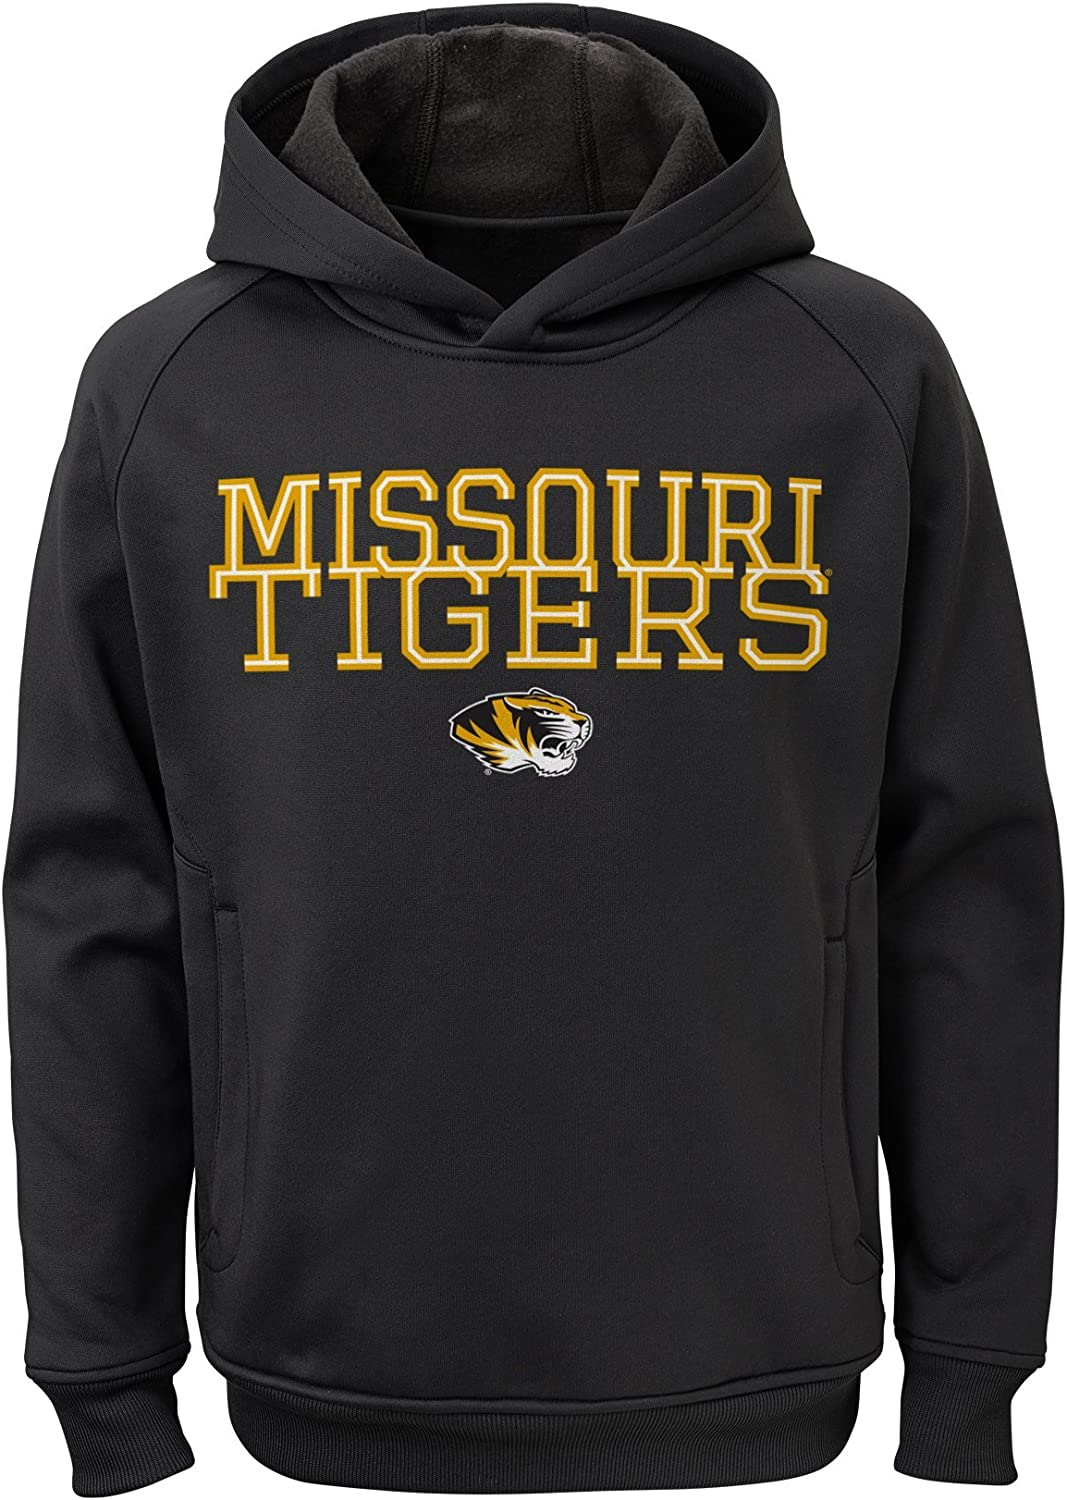 6-8 Youth Small Team Color NCAA Missouri Tigers Boys Outerstuff Overlap Performance Pullover Hoodie